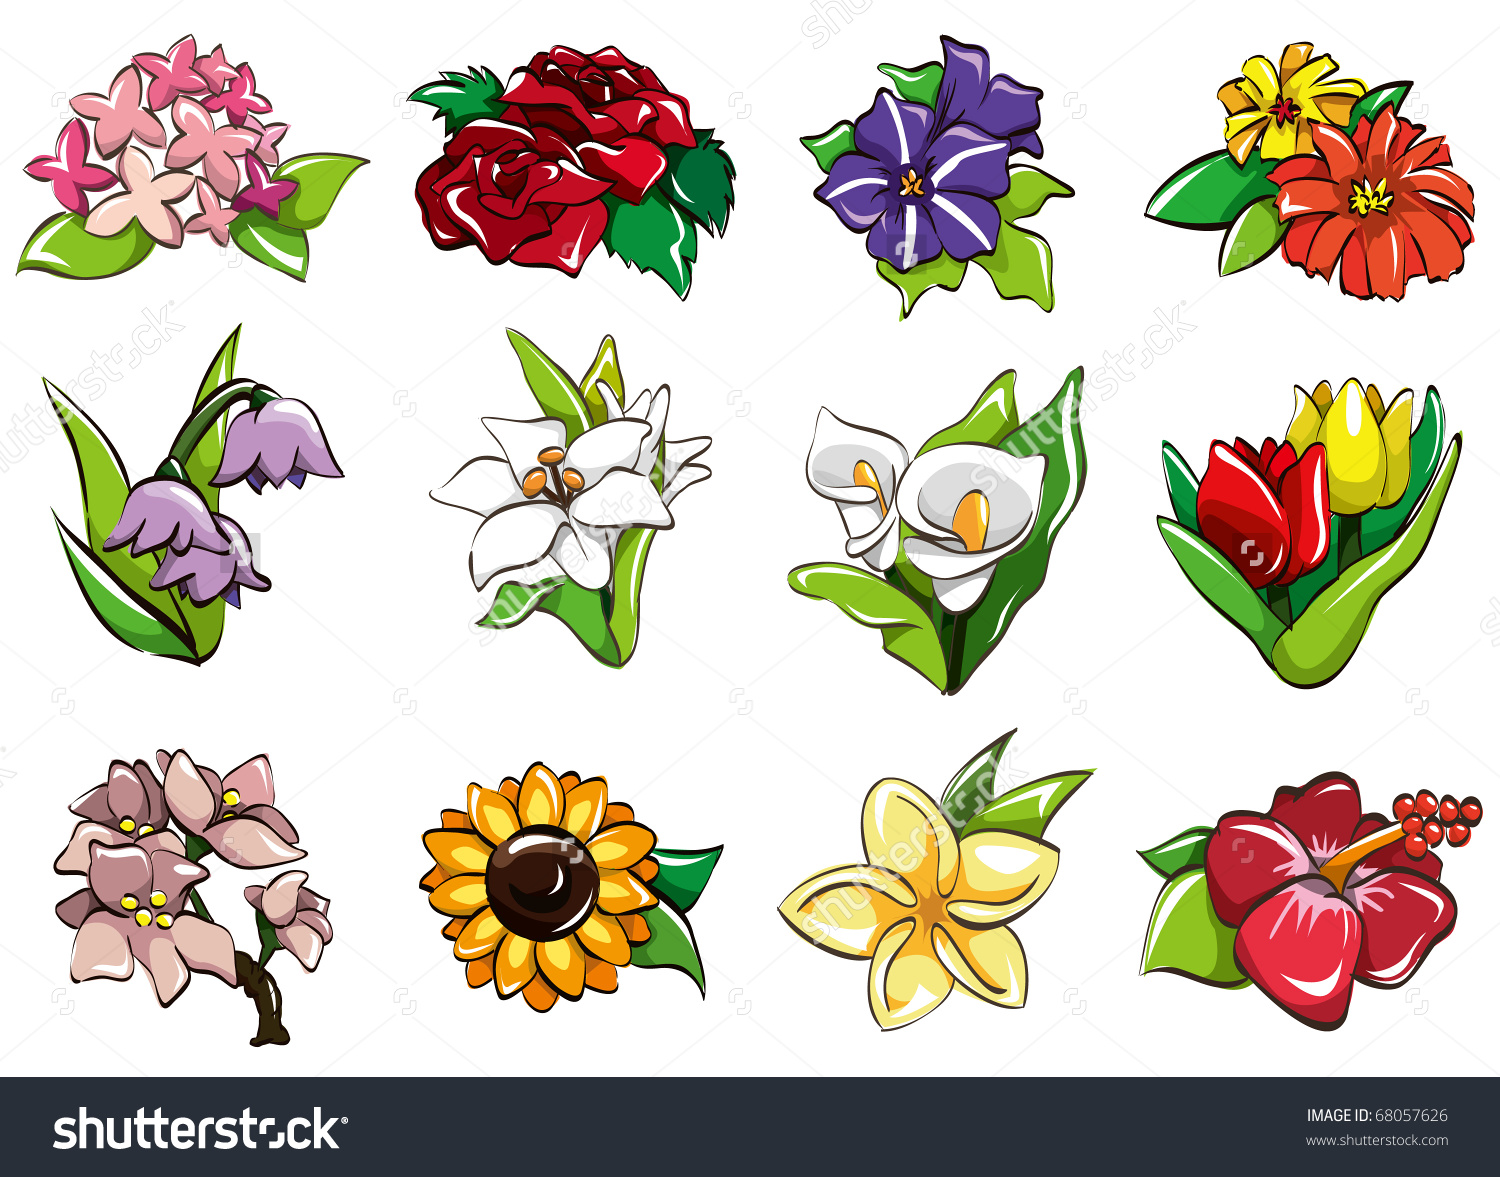 Cartoon Flower Icon Stock Vector 68057626.